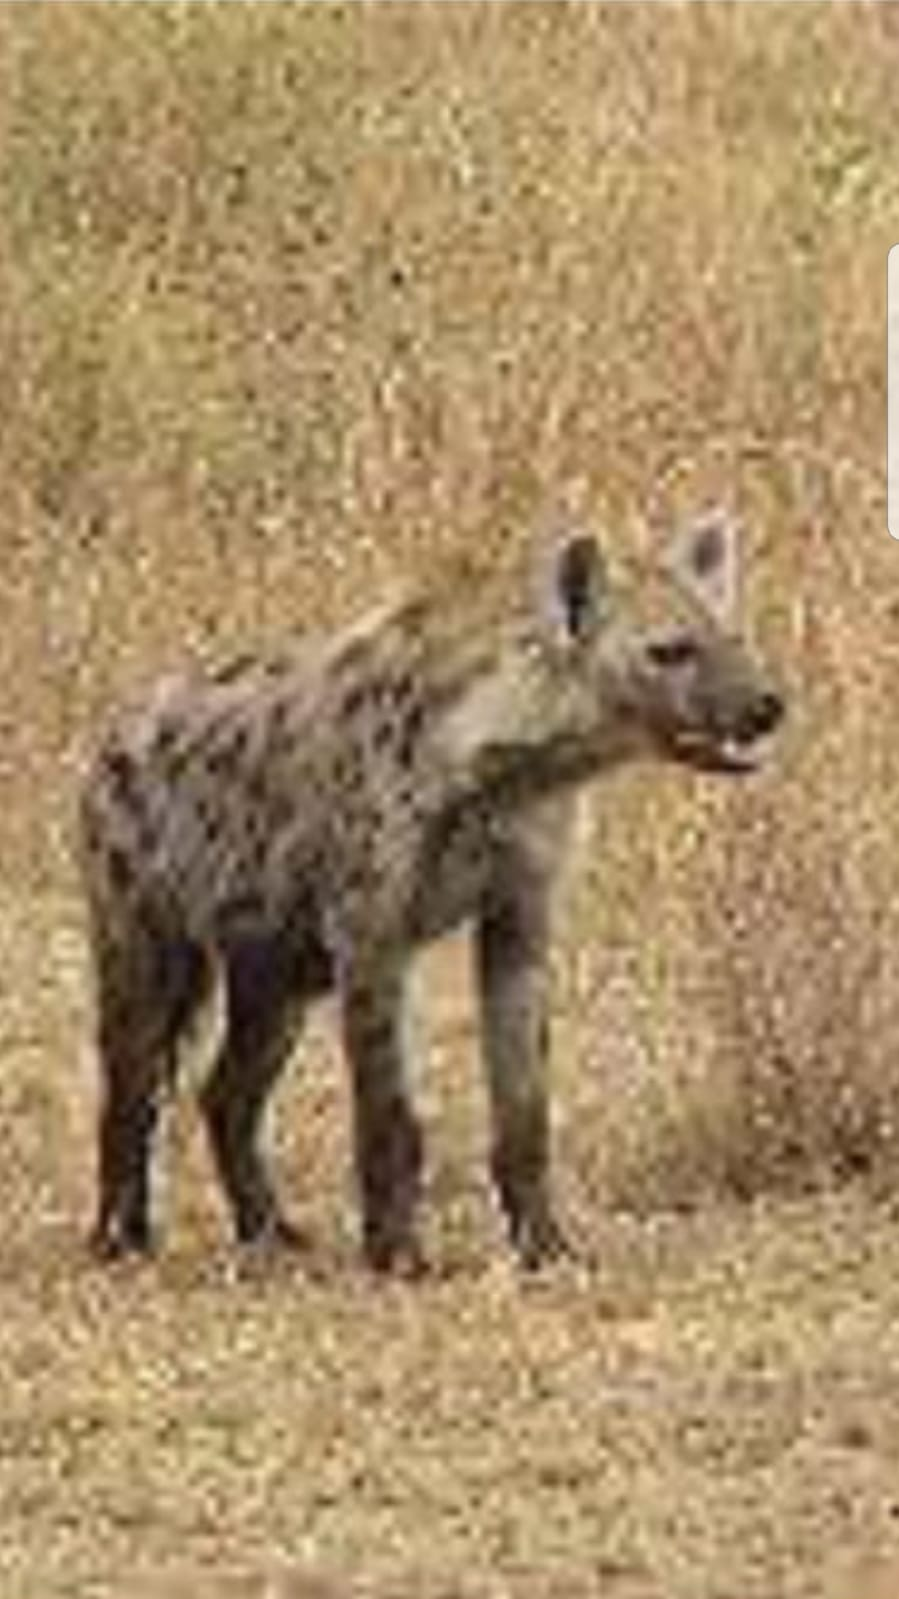 Israel sets hyenas on Palestinians | Stop the Wall